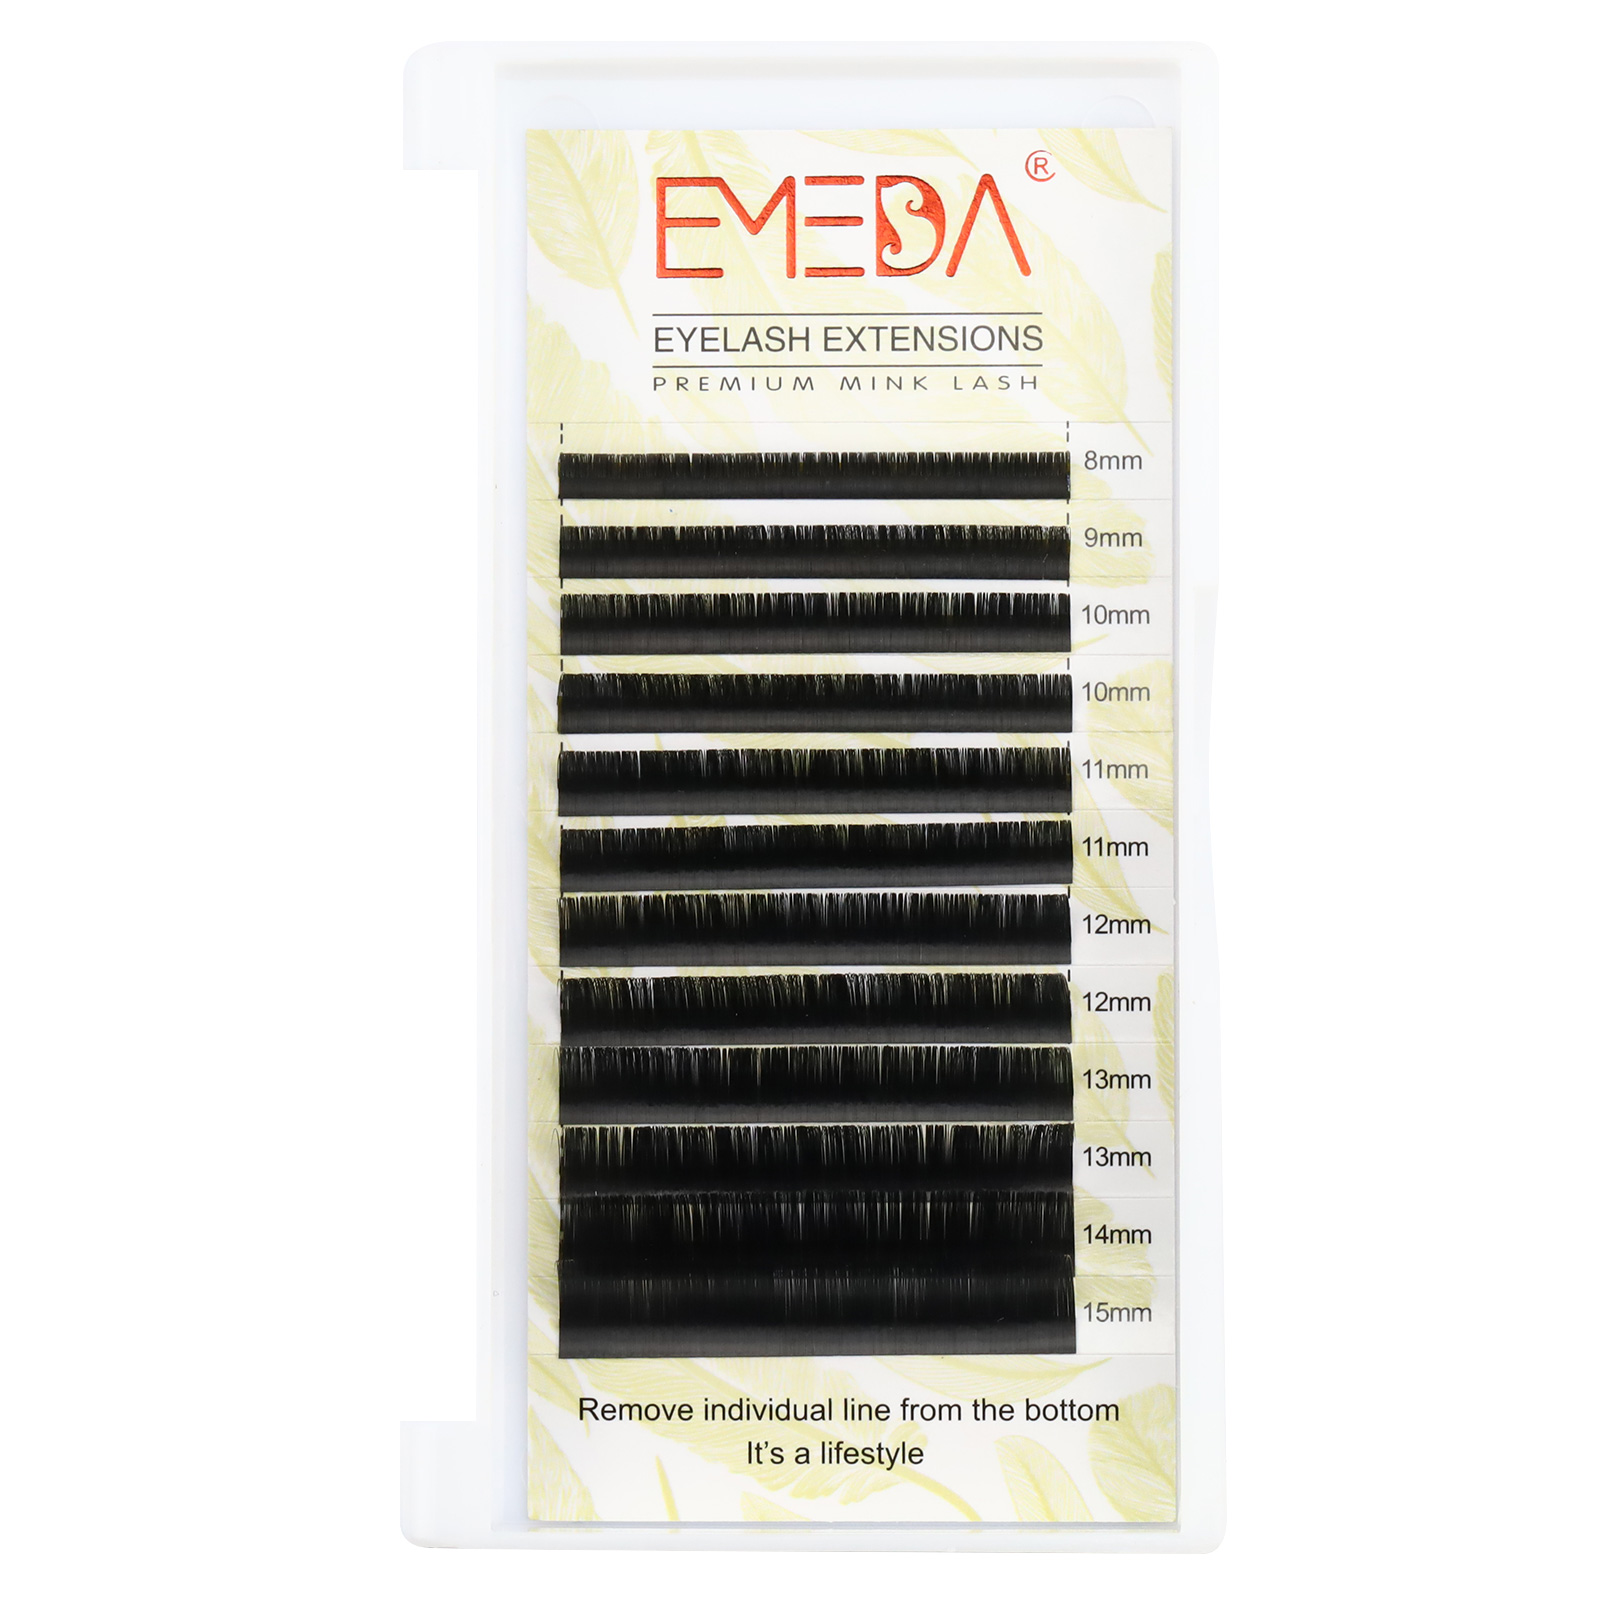 The styles of applying eyelash extensions